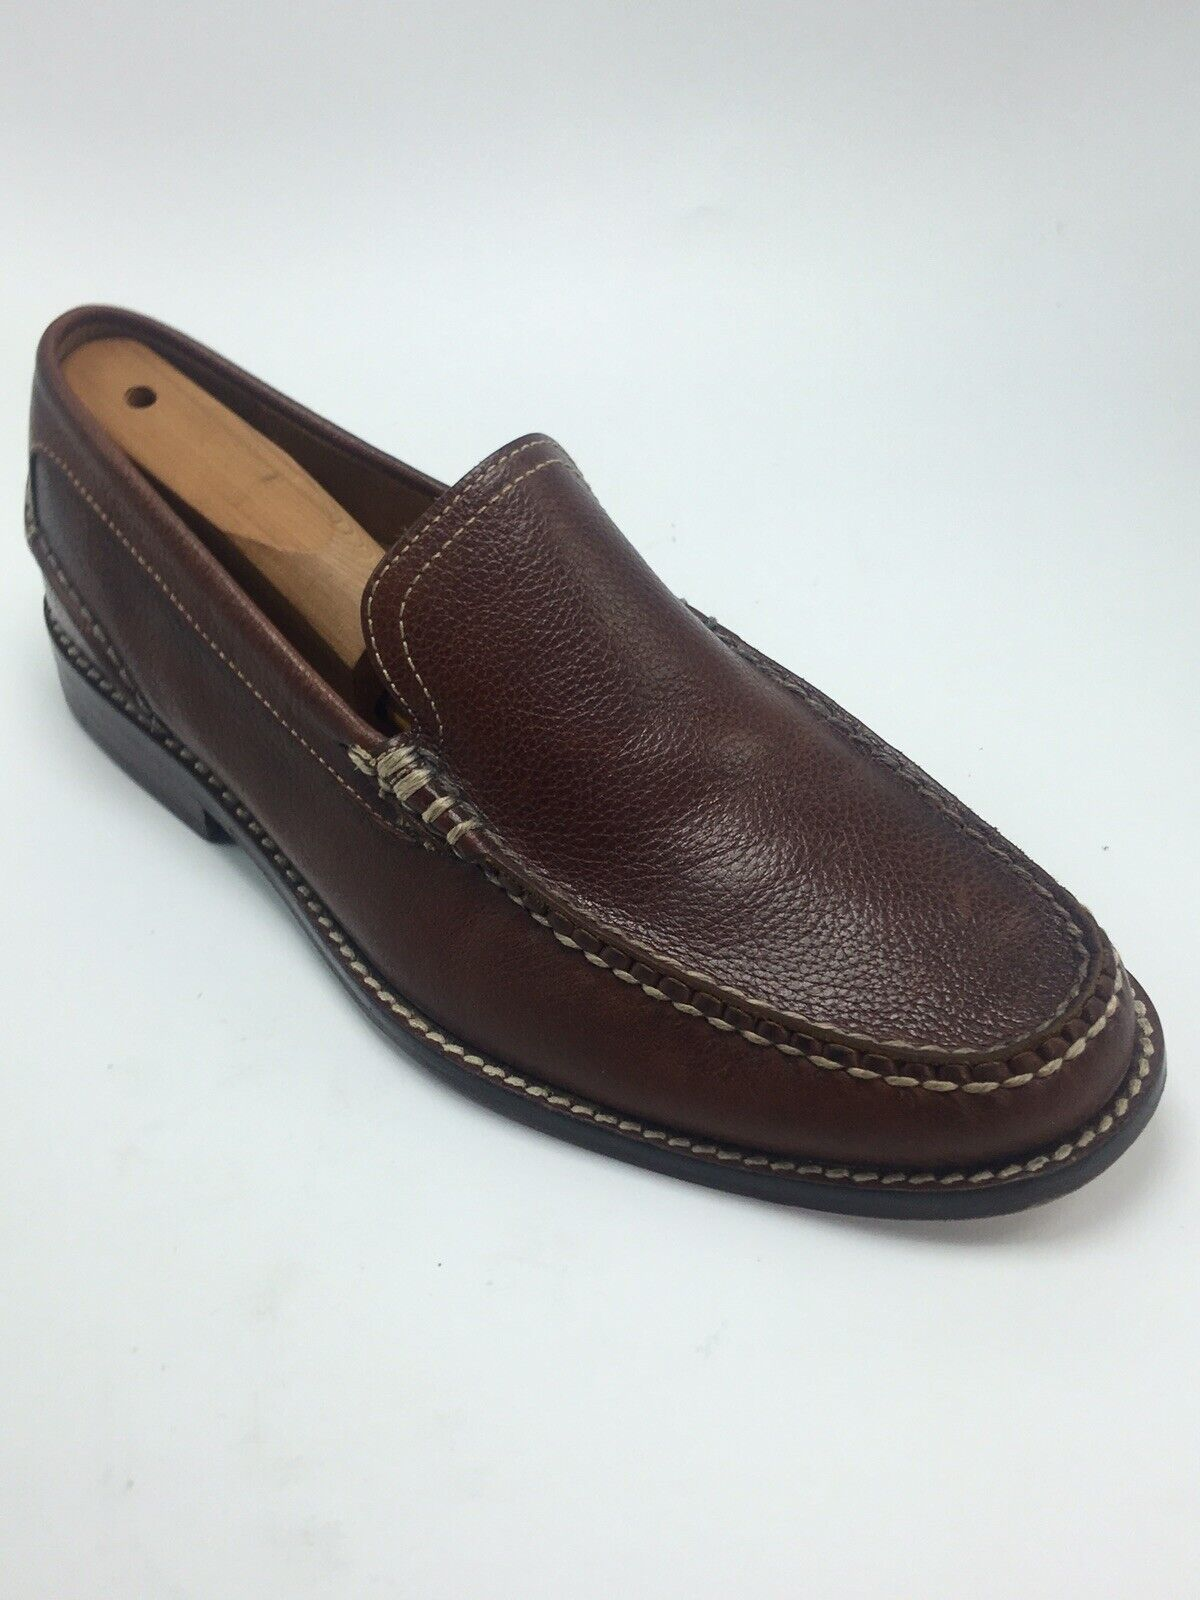 Sperry Top Sider Mens gold Cup Brown Leather Slip On Loafer Men shoes Size 8.5 M